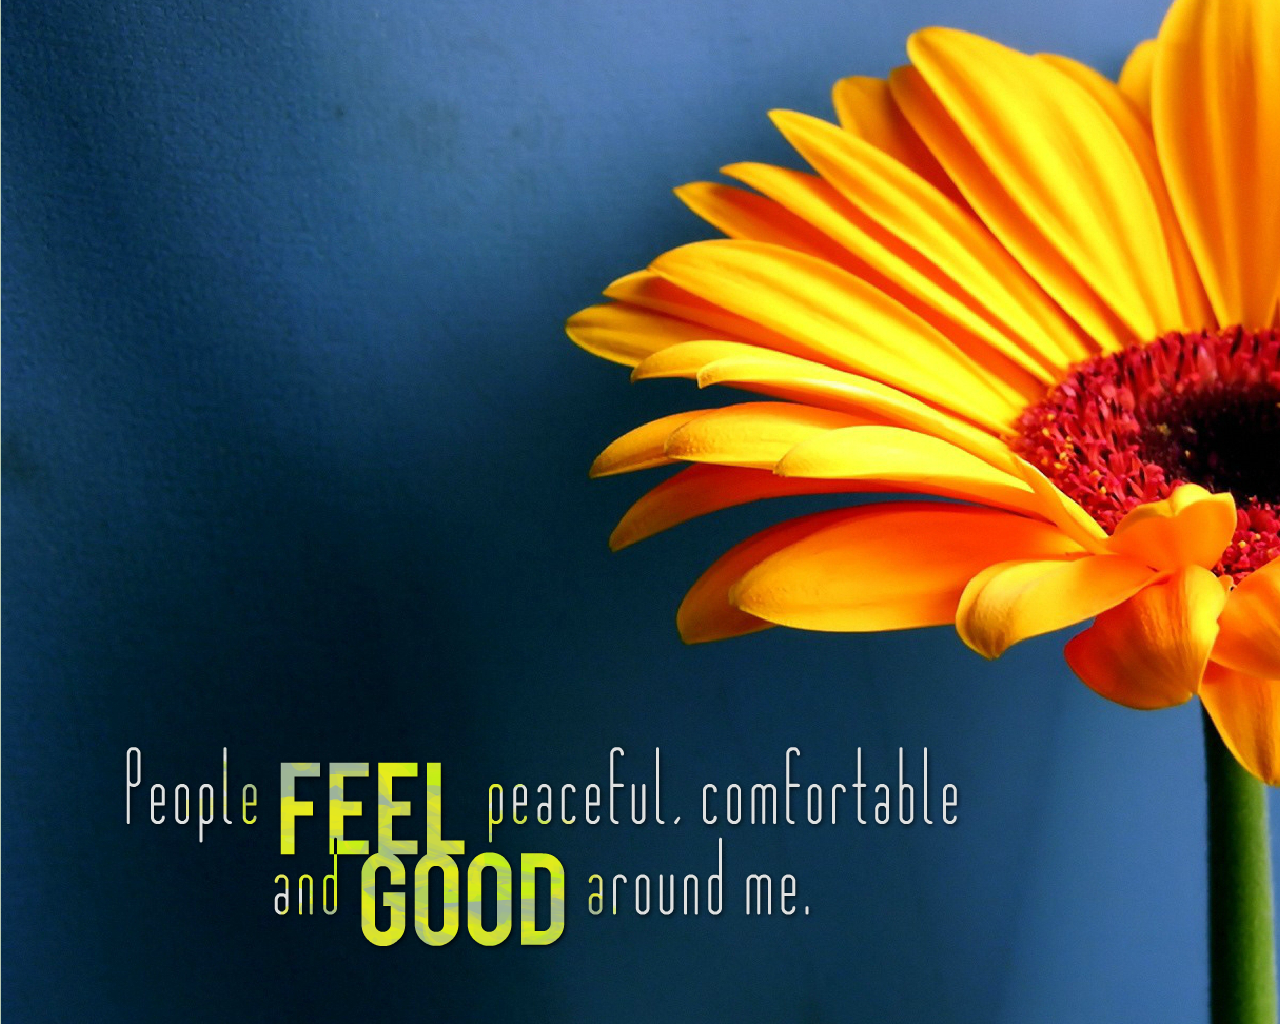 May 2014 Positive Affirmations Wallpapers, Positive Affirmations Wallpapers, Affirmations Wallpapers